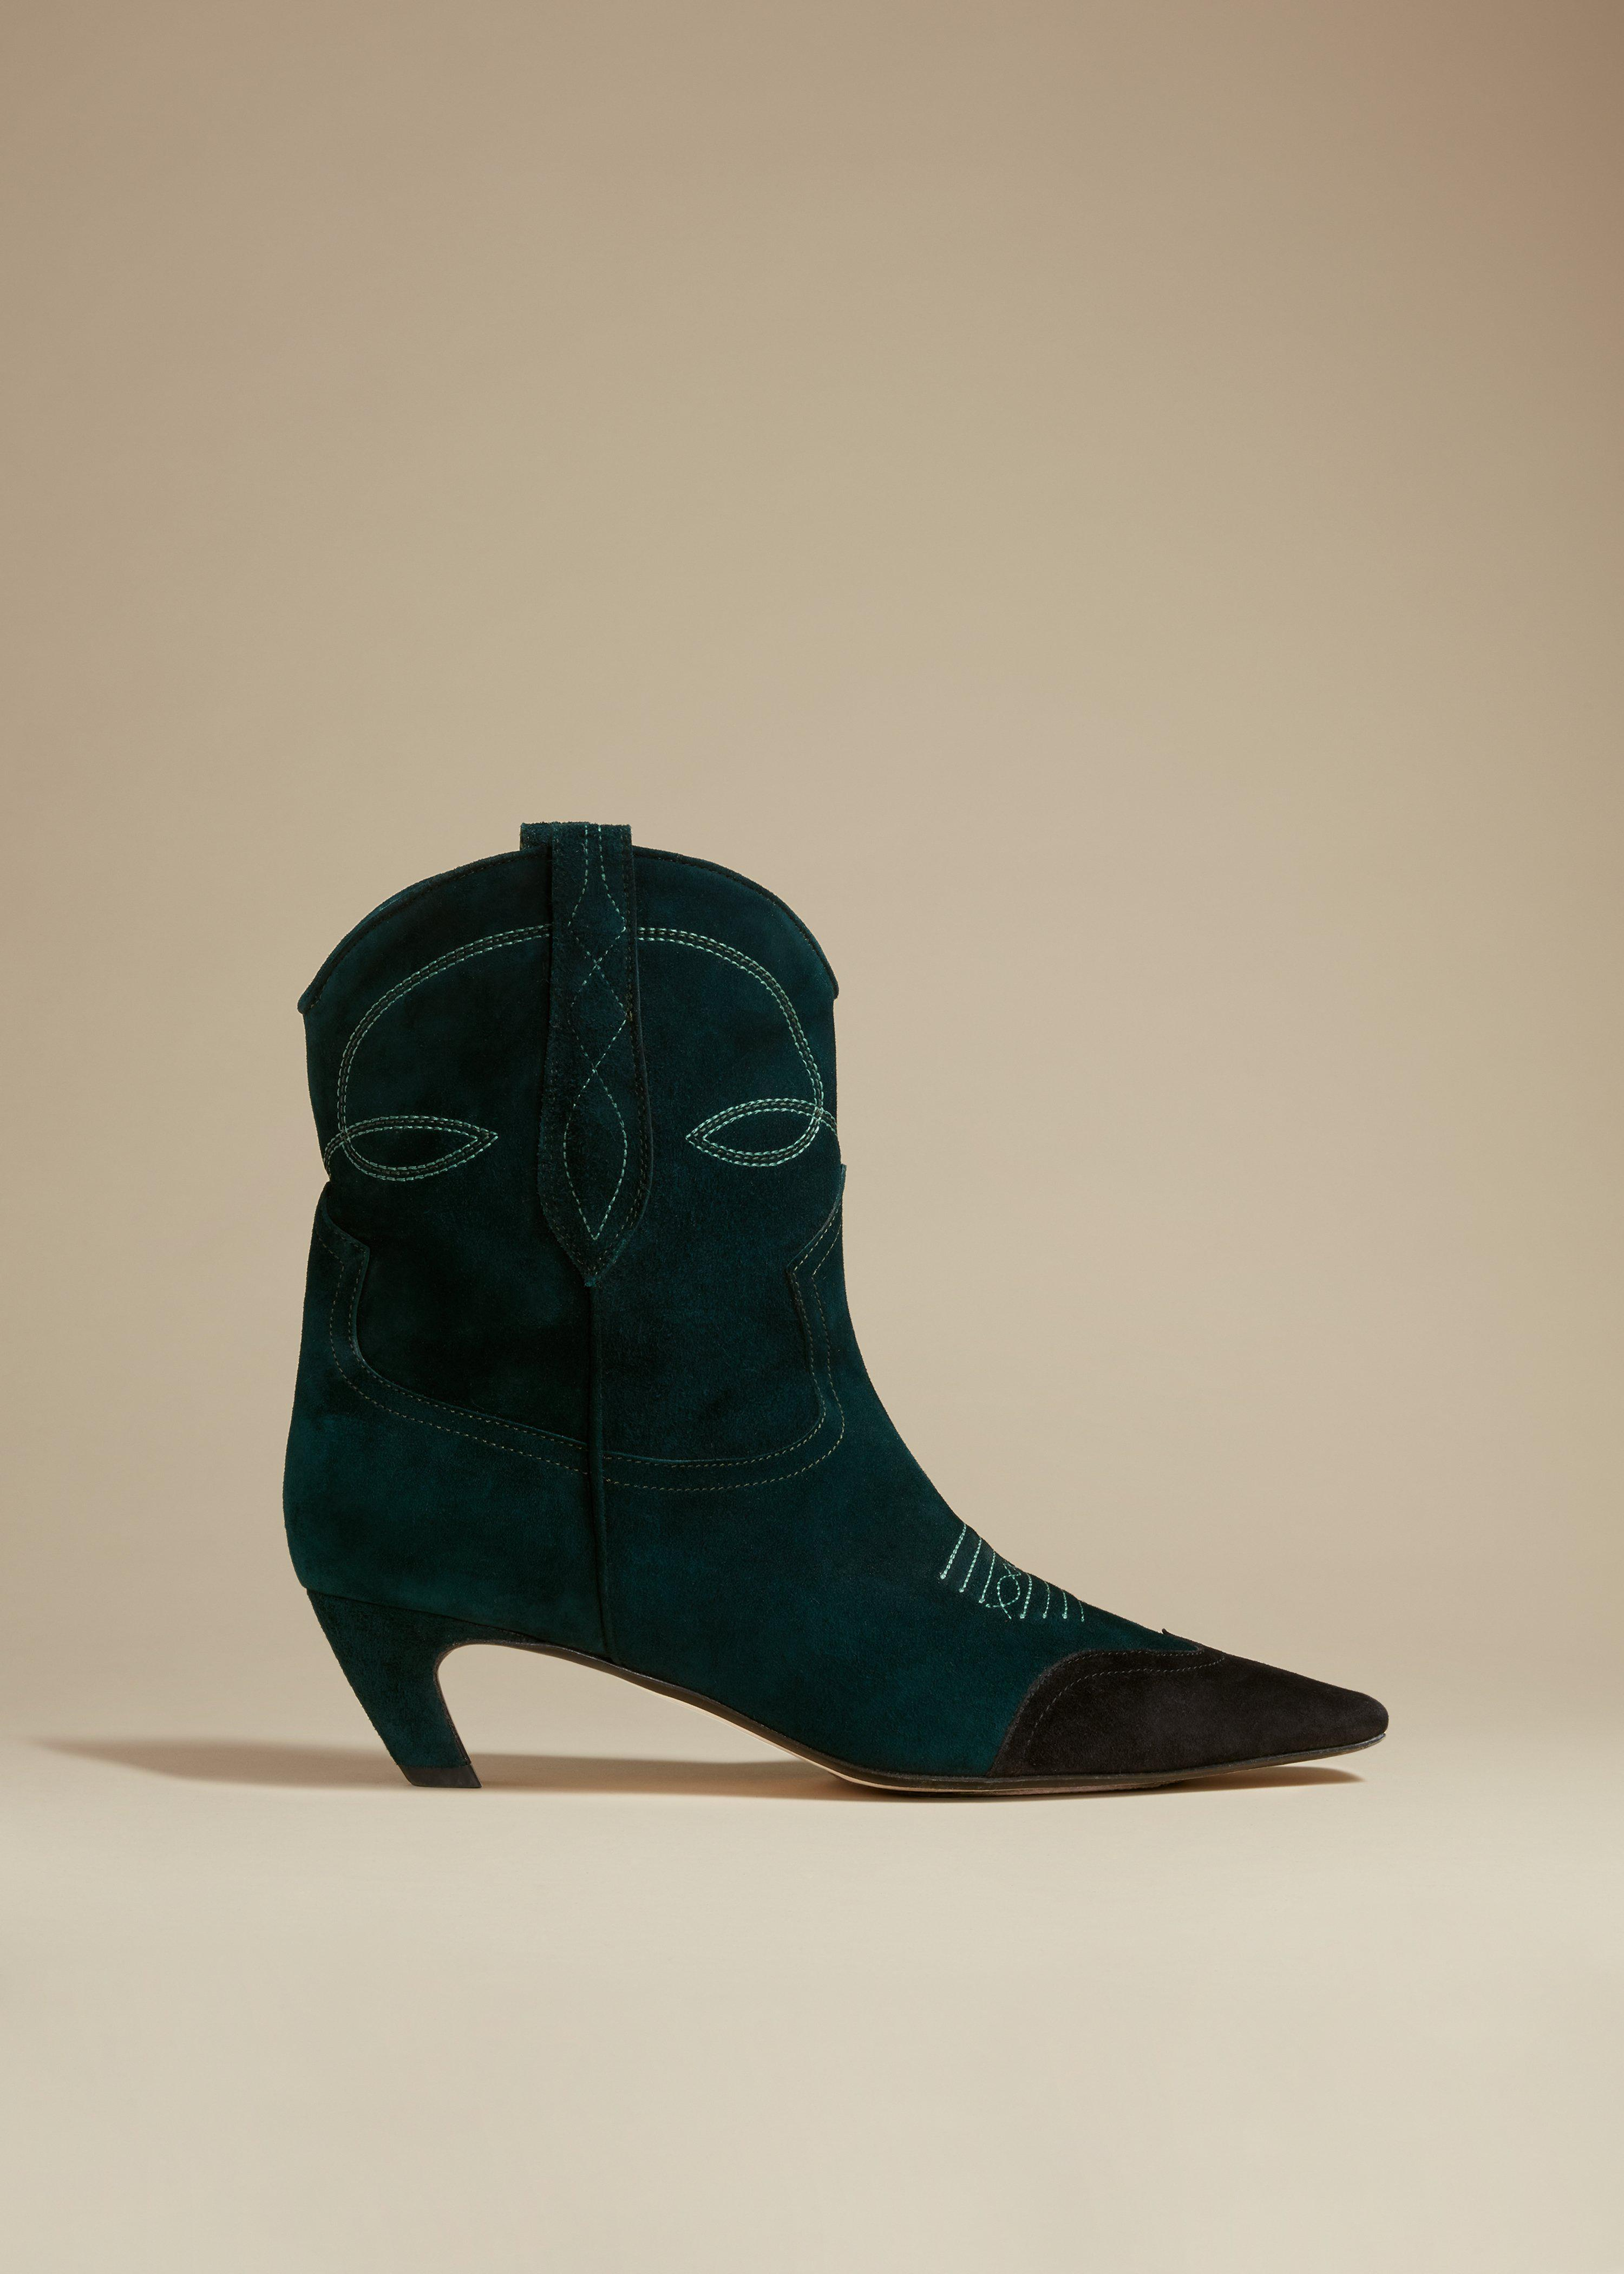 The Dallas Ankle Boot in Hunter Green Suede 0